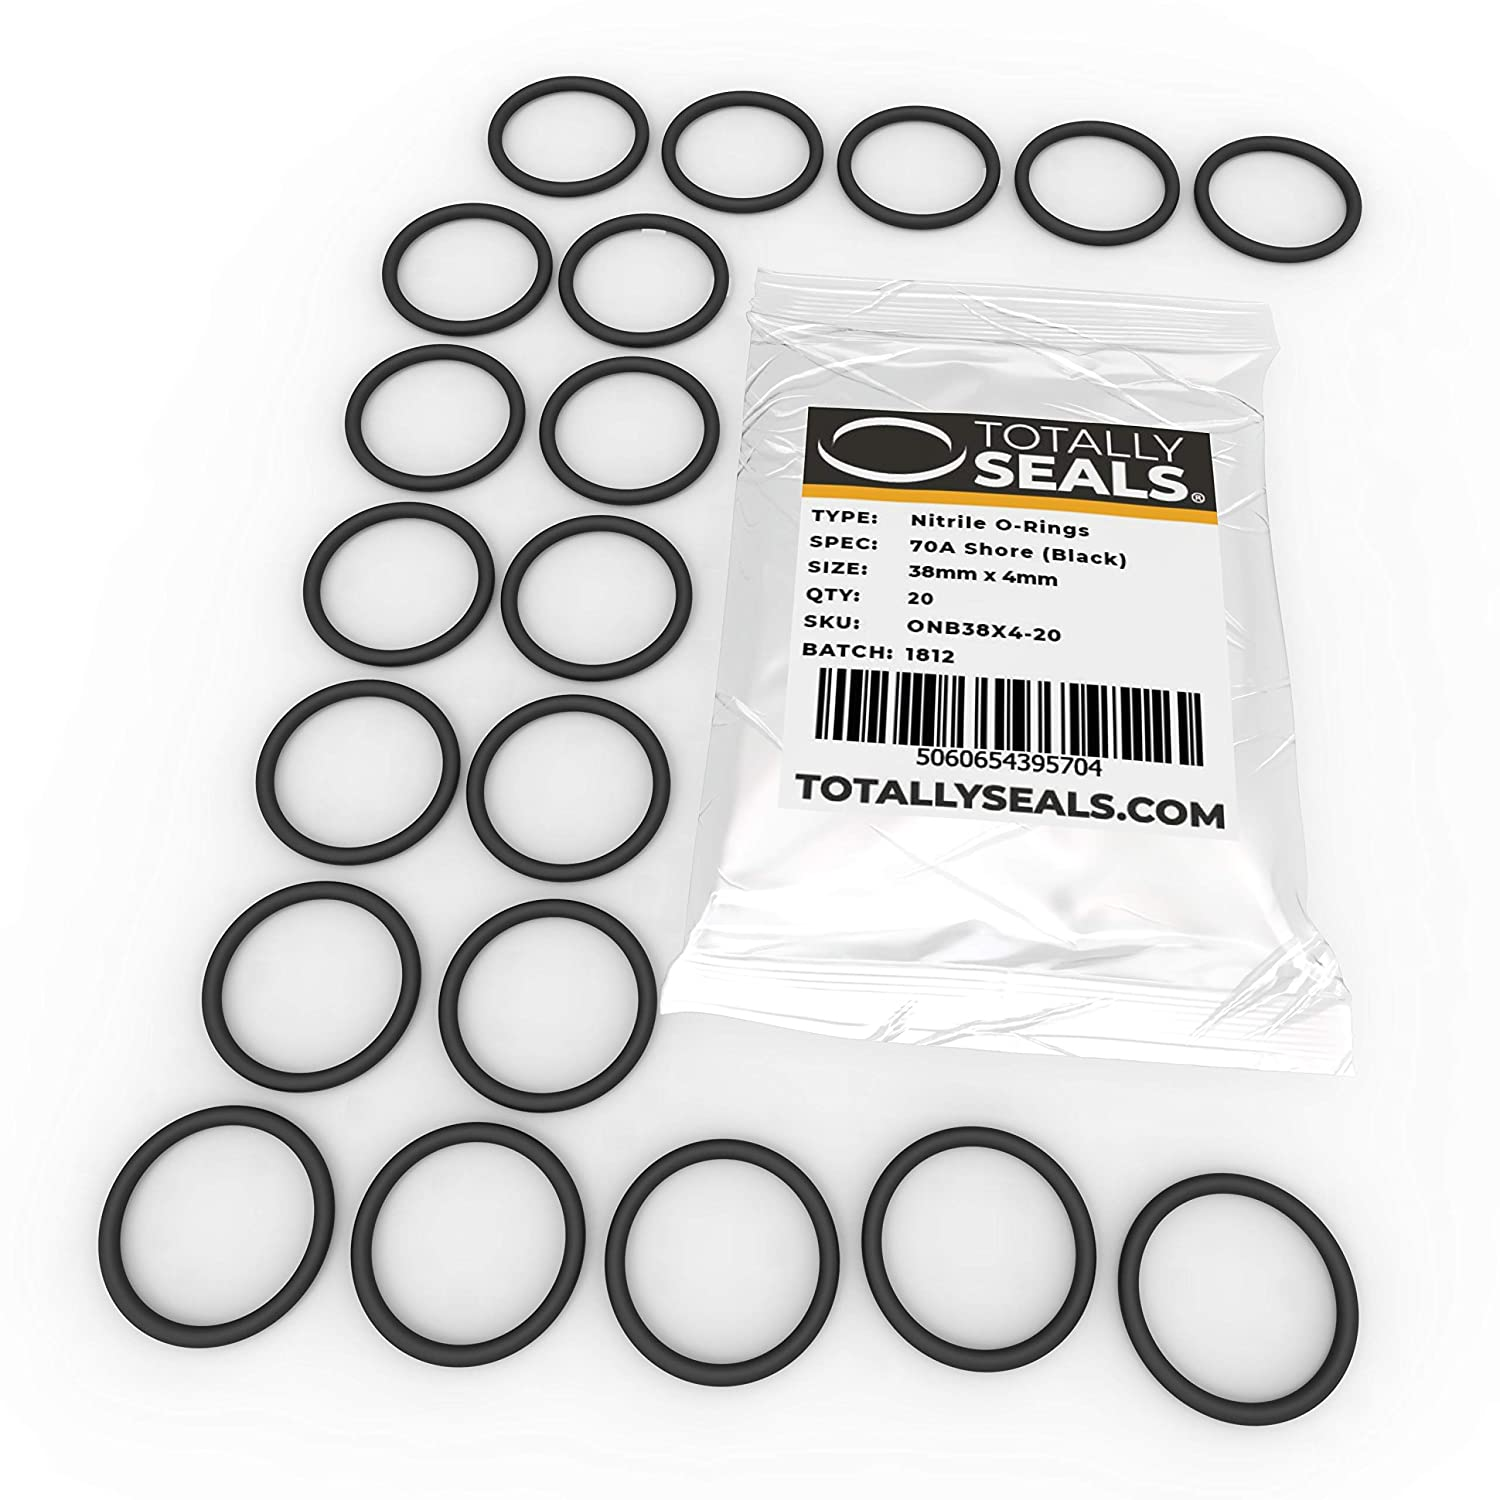 38mm x 4mm Nitrile Rubber O-Rings 70A Shore Hardness Pack of 10 46mm OD